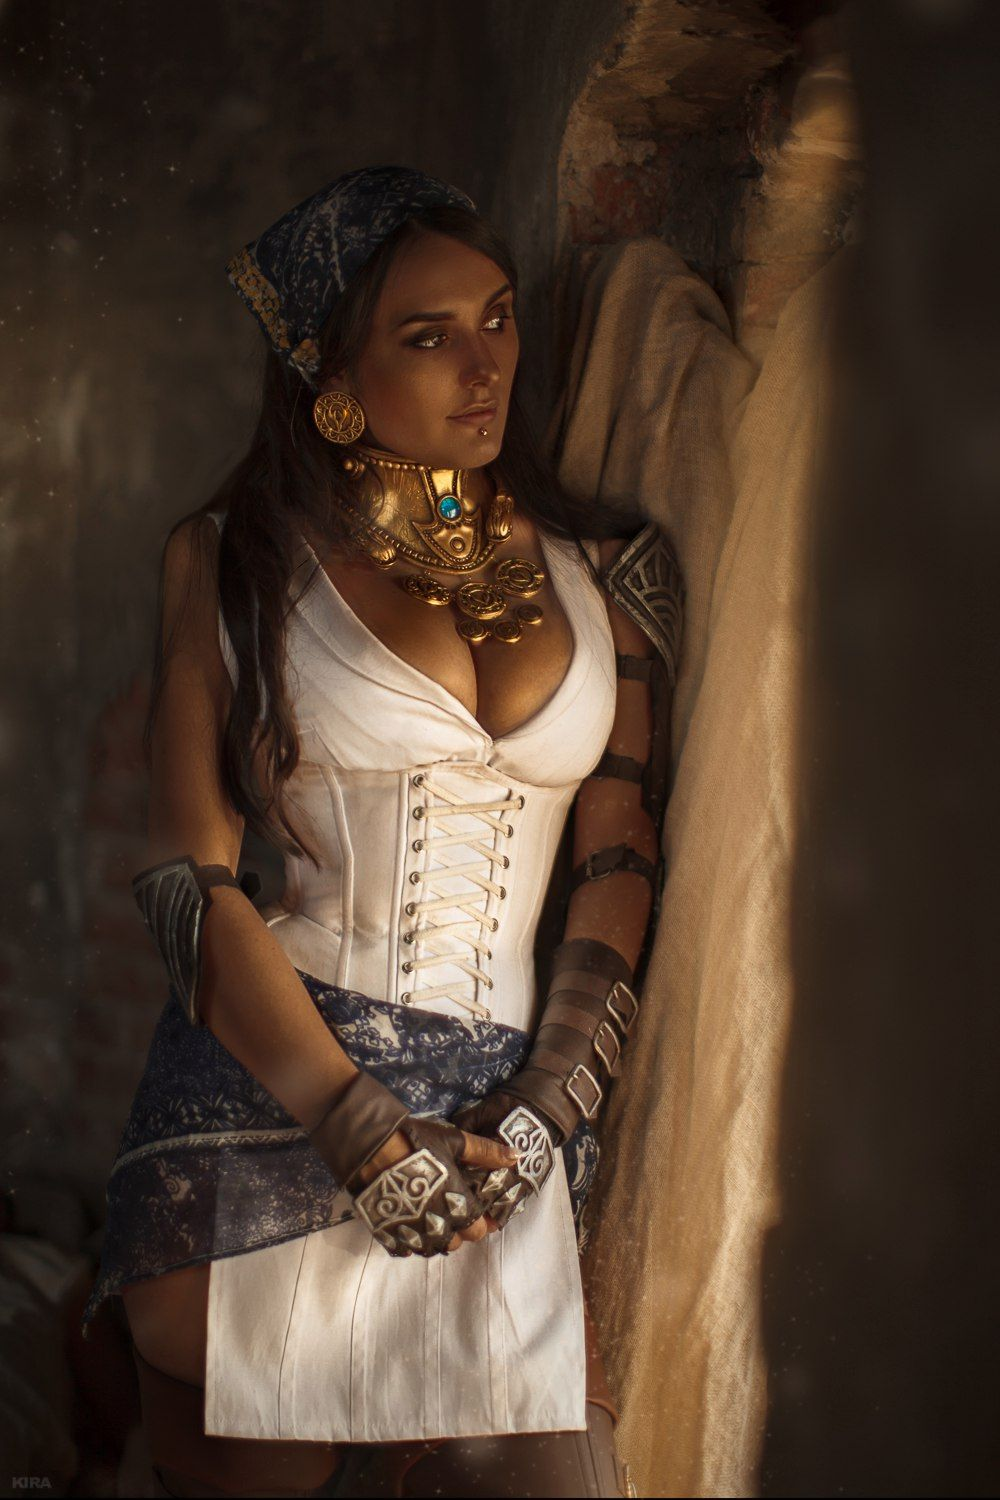 [Sexy Cosplay] Dragon Age – Isabella at the Hanged Man by Valeria Lavkhaeva